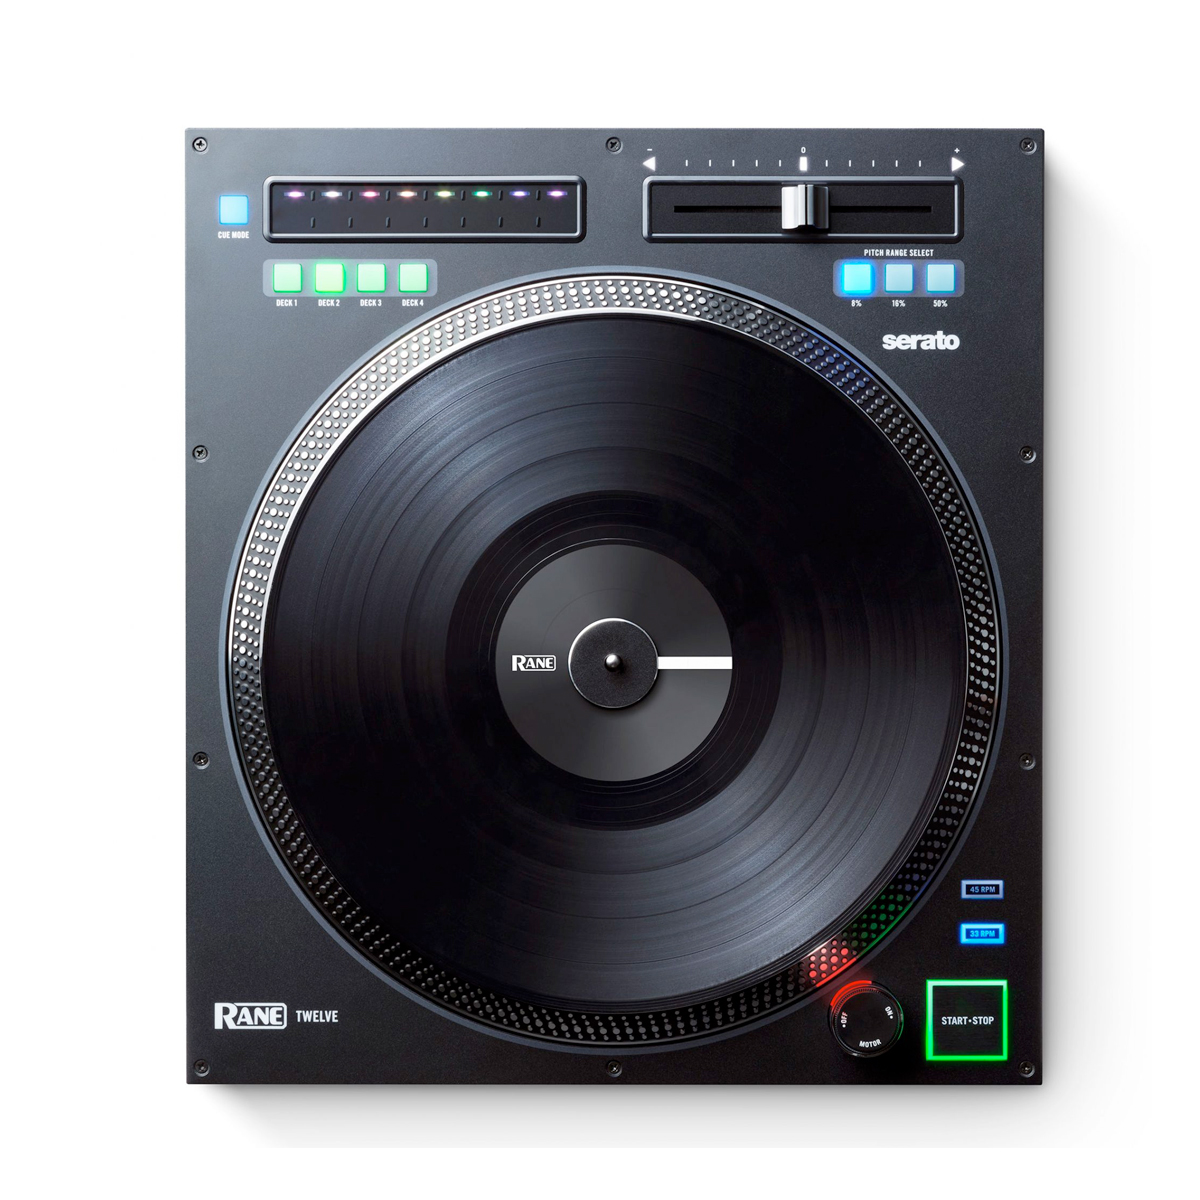 Rane twelve turntable controller with motorized platter for Dj controller motorized platters